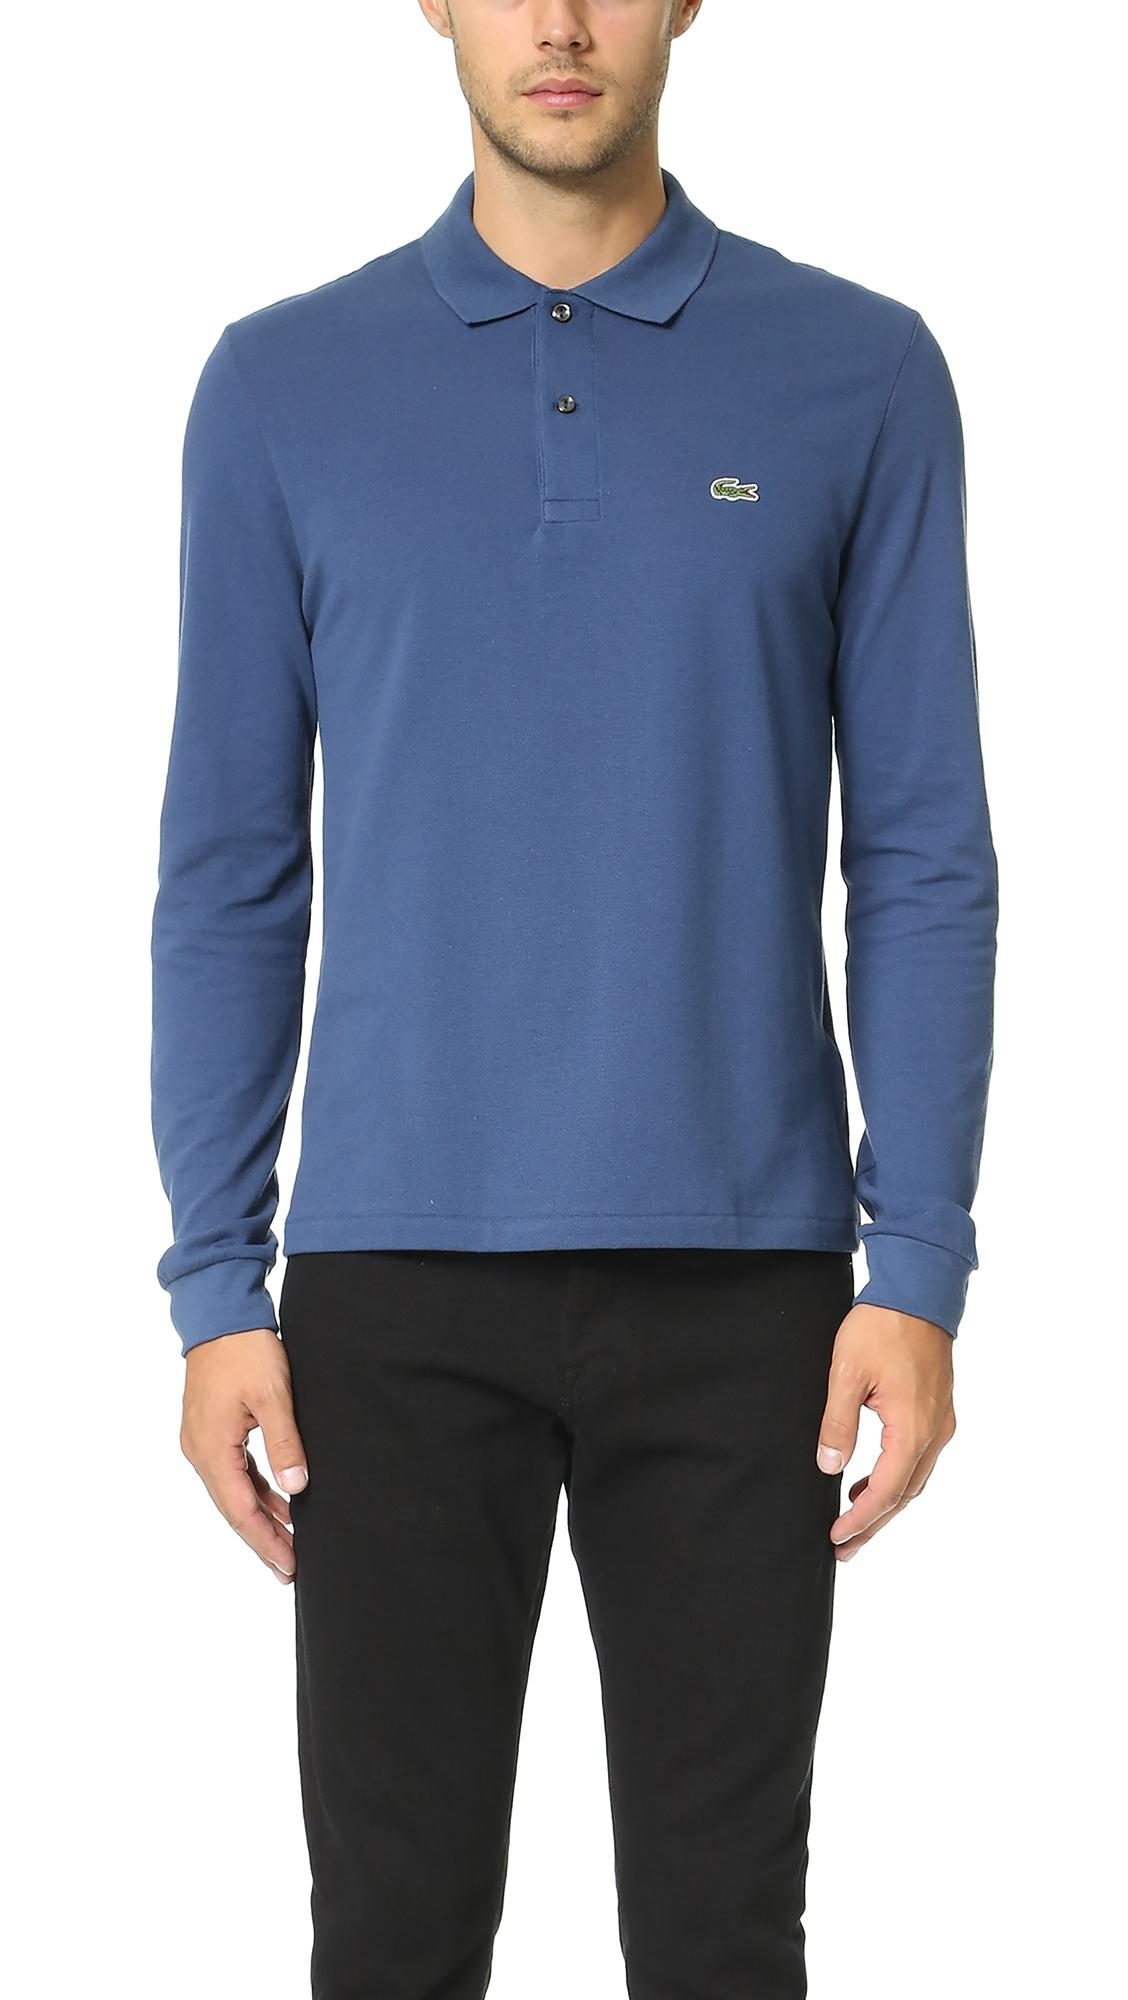 b2011563 Long Sleeve Classic Pique Polo in Anchor Chine